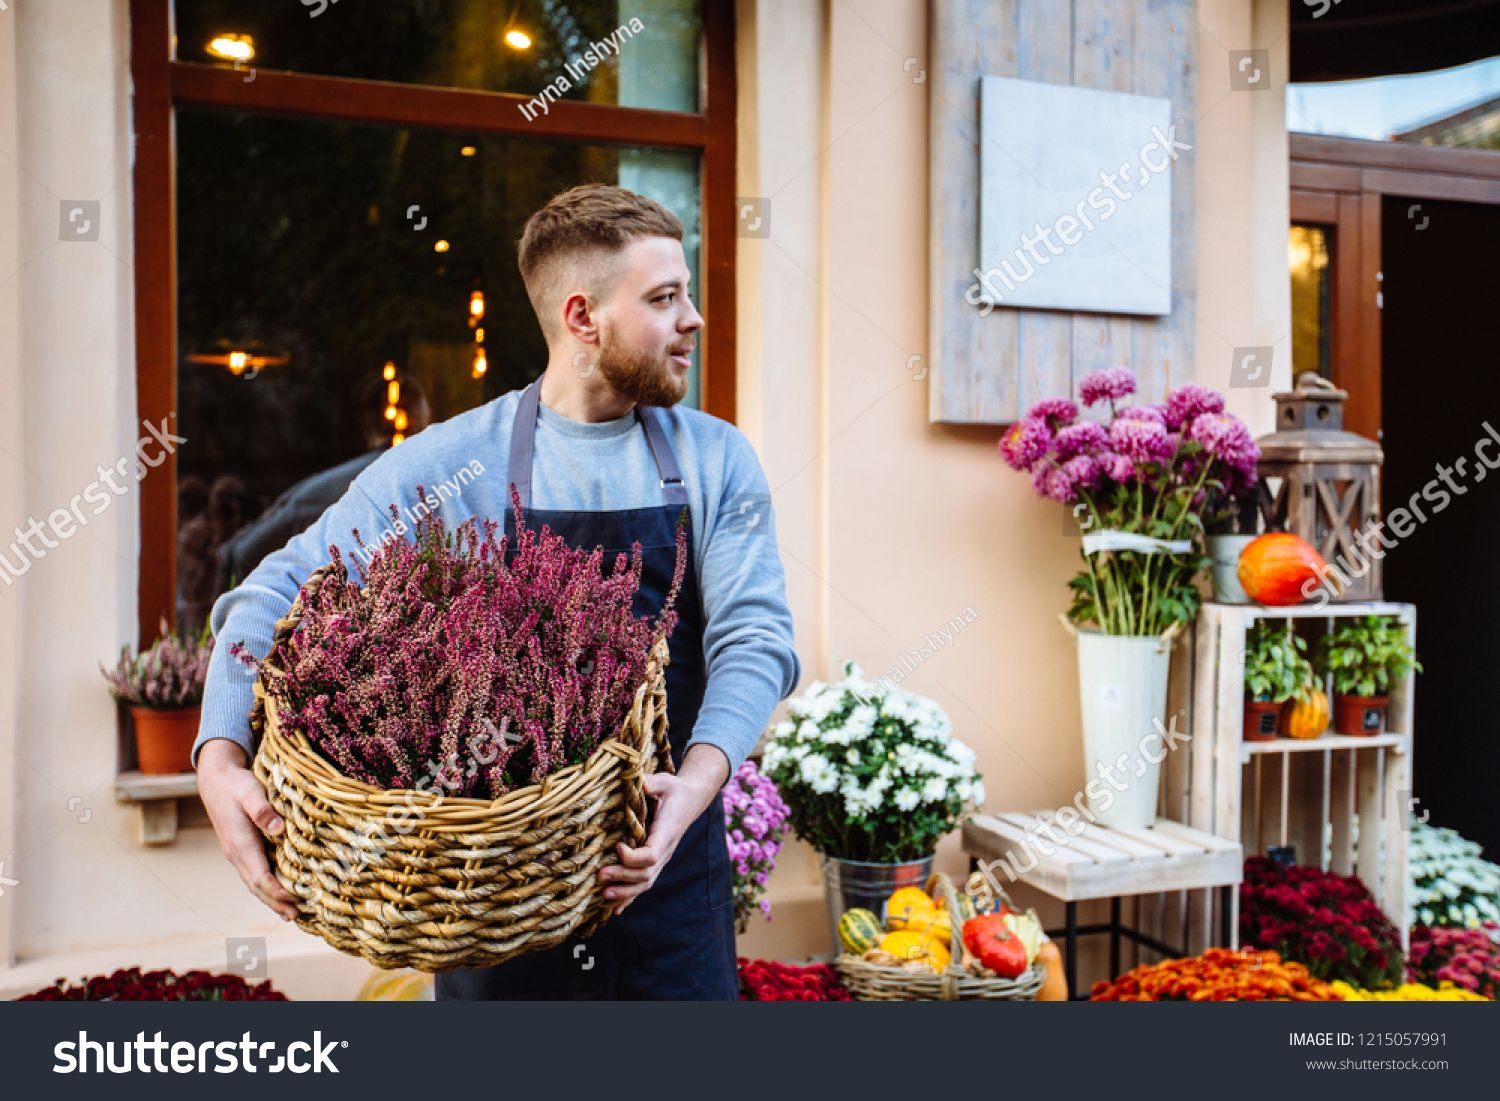 Man In Apron Holding Basket With Vibrant Pink Common Heather Calluna Vulgaris Looking Away Over Window Storefront In 2020 Aprons For Men Photo Editing Stock Photos